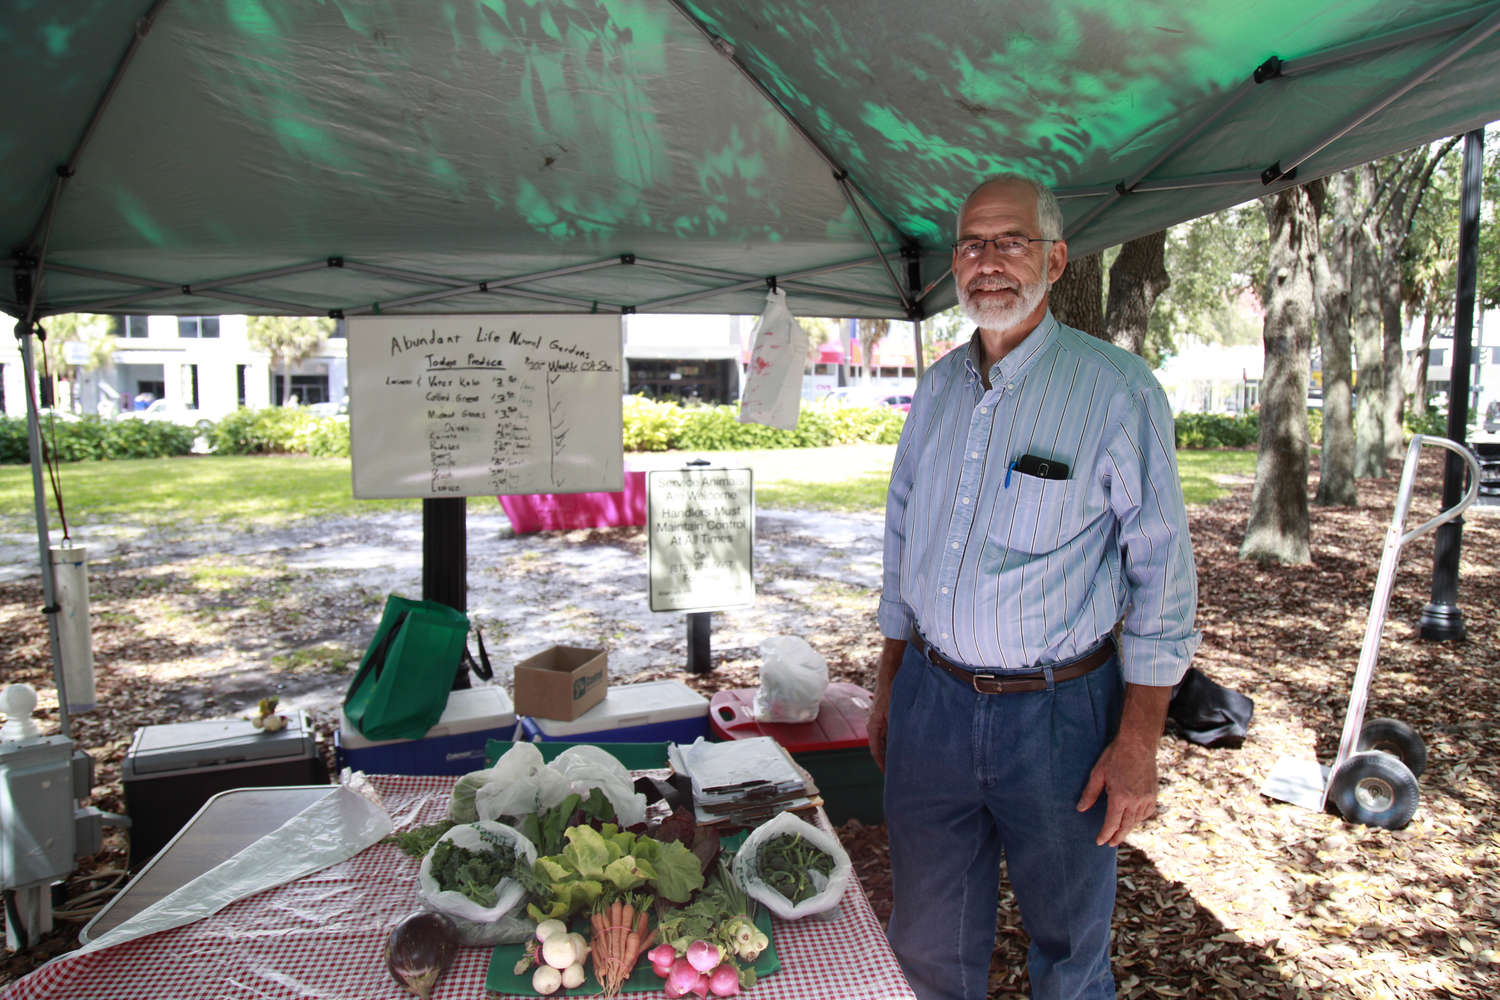 David Goosey farms 1 acre at his Abundant Life Natural Gardens in Plant City. He runs a CSA (community supported agriculture club) and sells at the downtown Tampa market. (LARA CERRI | Times)